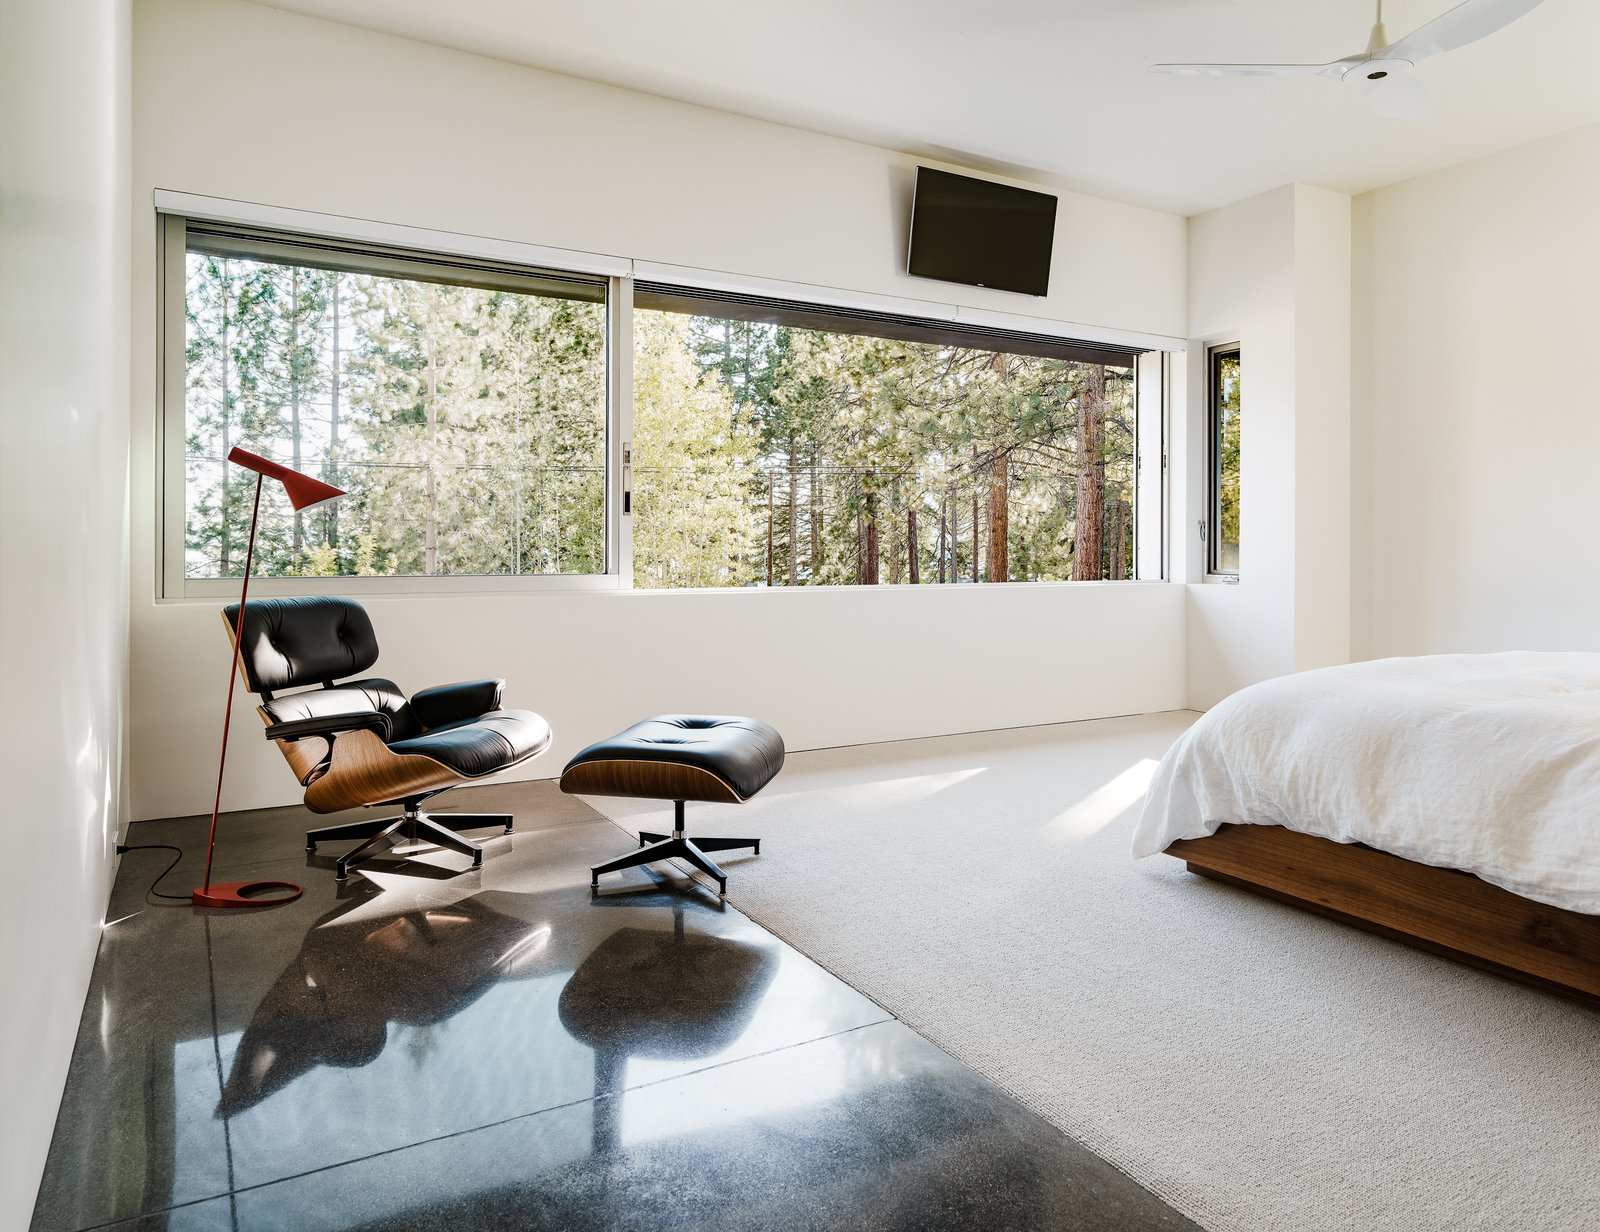 Bedroom, Carpet, Concrete, Bed, Chair, and Floor The window in one of the upstairs bedrooms horizontally frames the view.  Bedroom Concrete Floor Photos from An Uplifting Lake Tahoe Retreat Uses Light as a Building Material